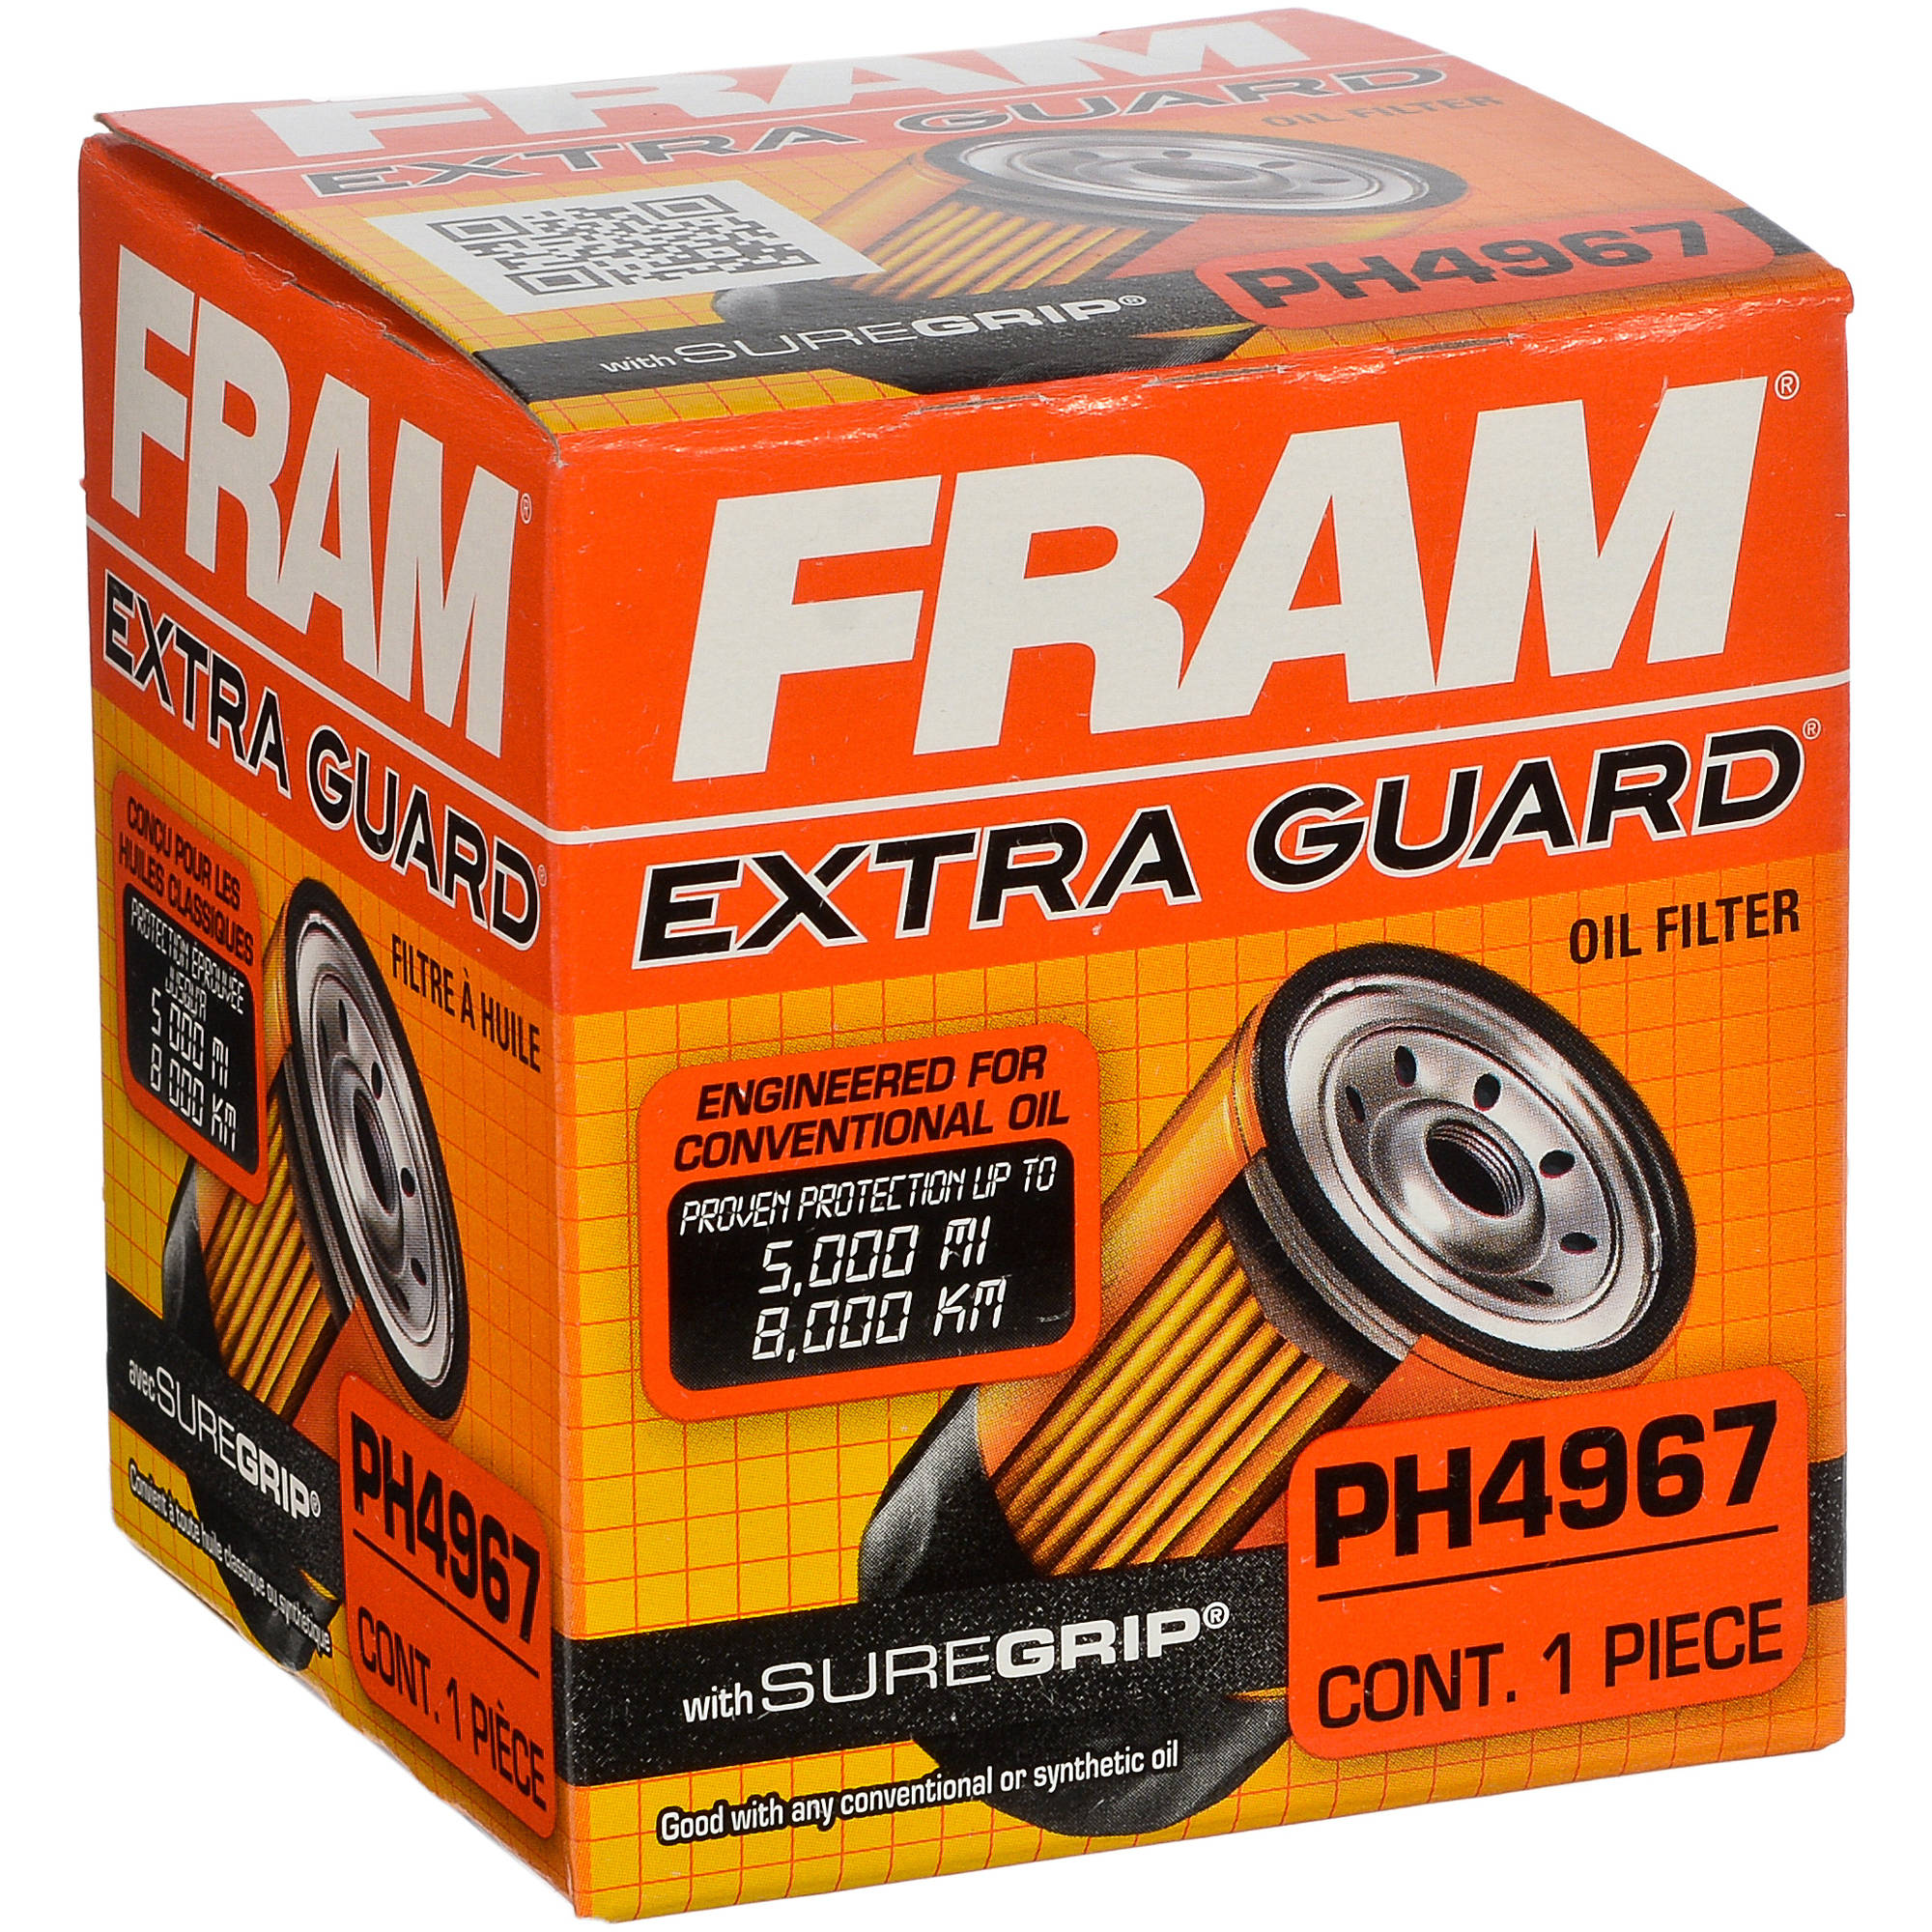 FRAM Extra Guard Oil Filter, PH4967